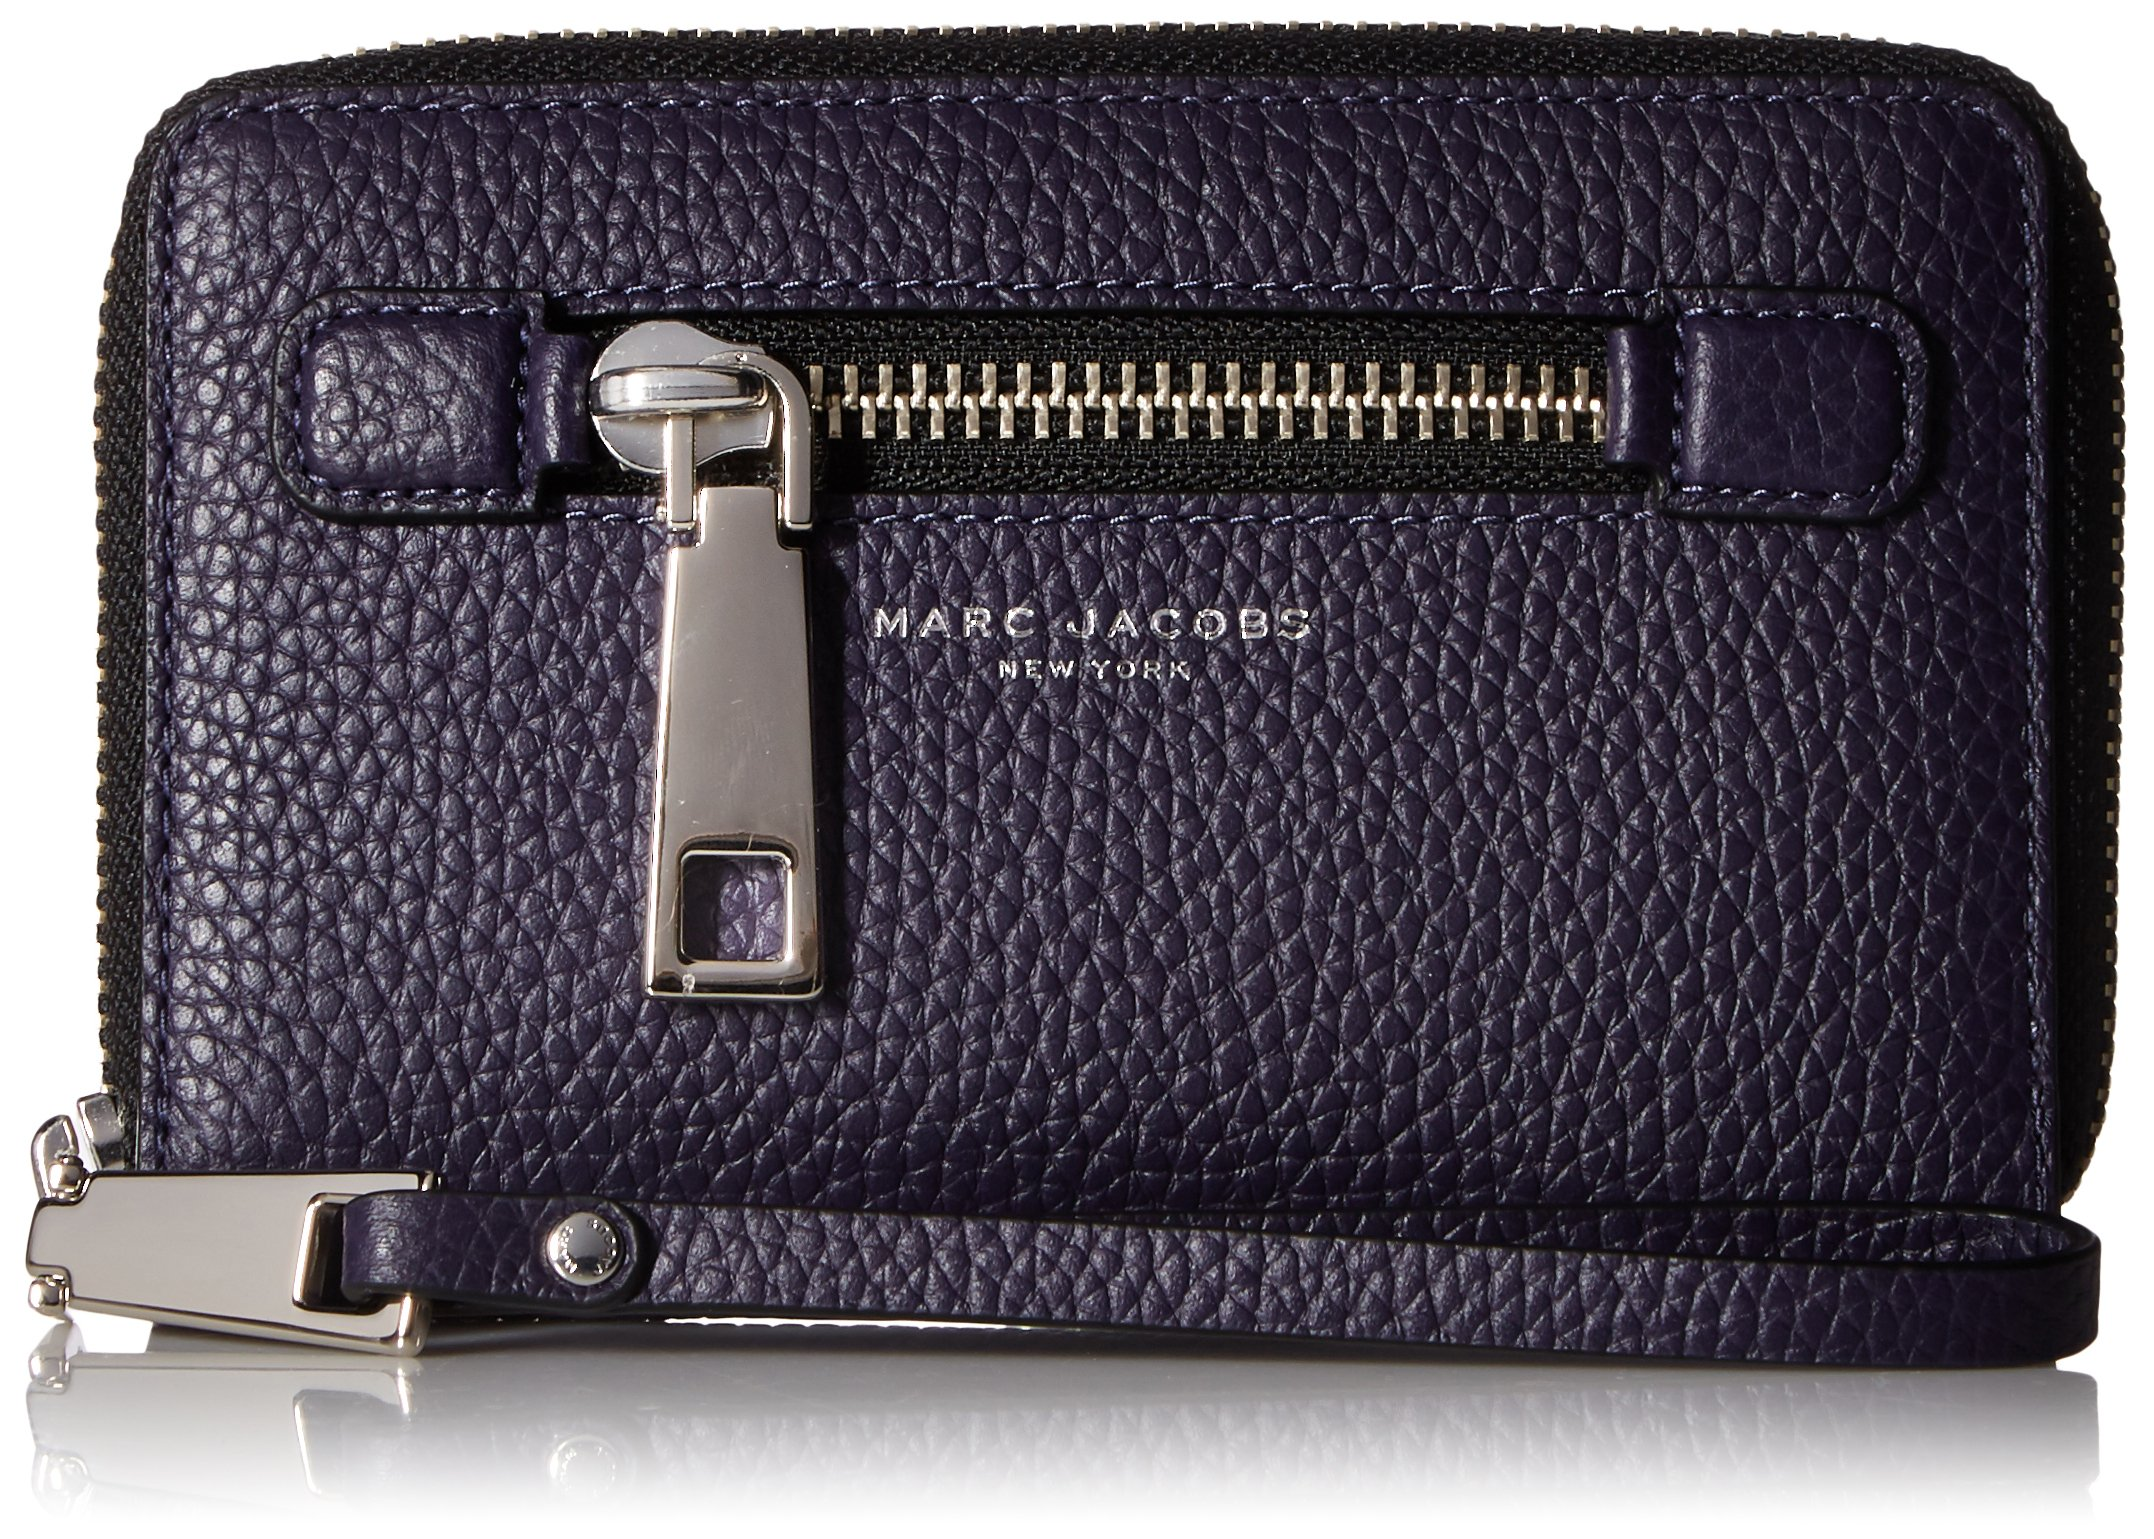 Marc Jacobs Gotham Zip Phone Wristlet, Nightshade